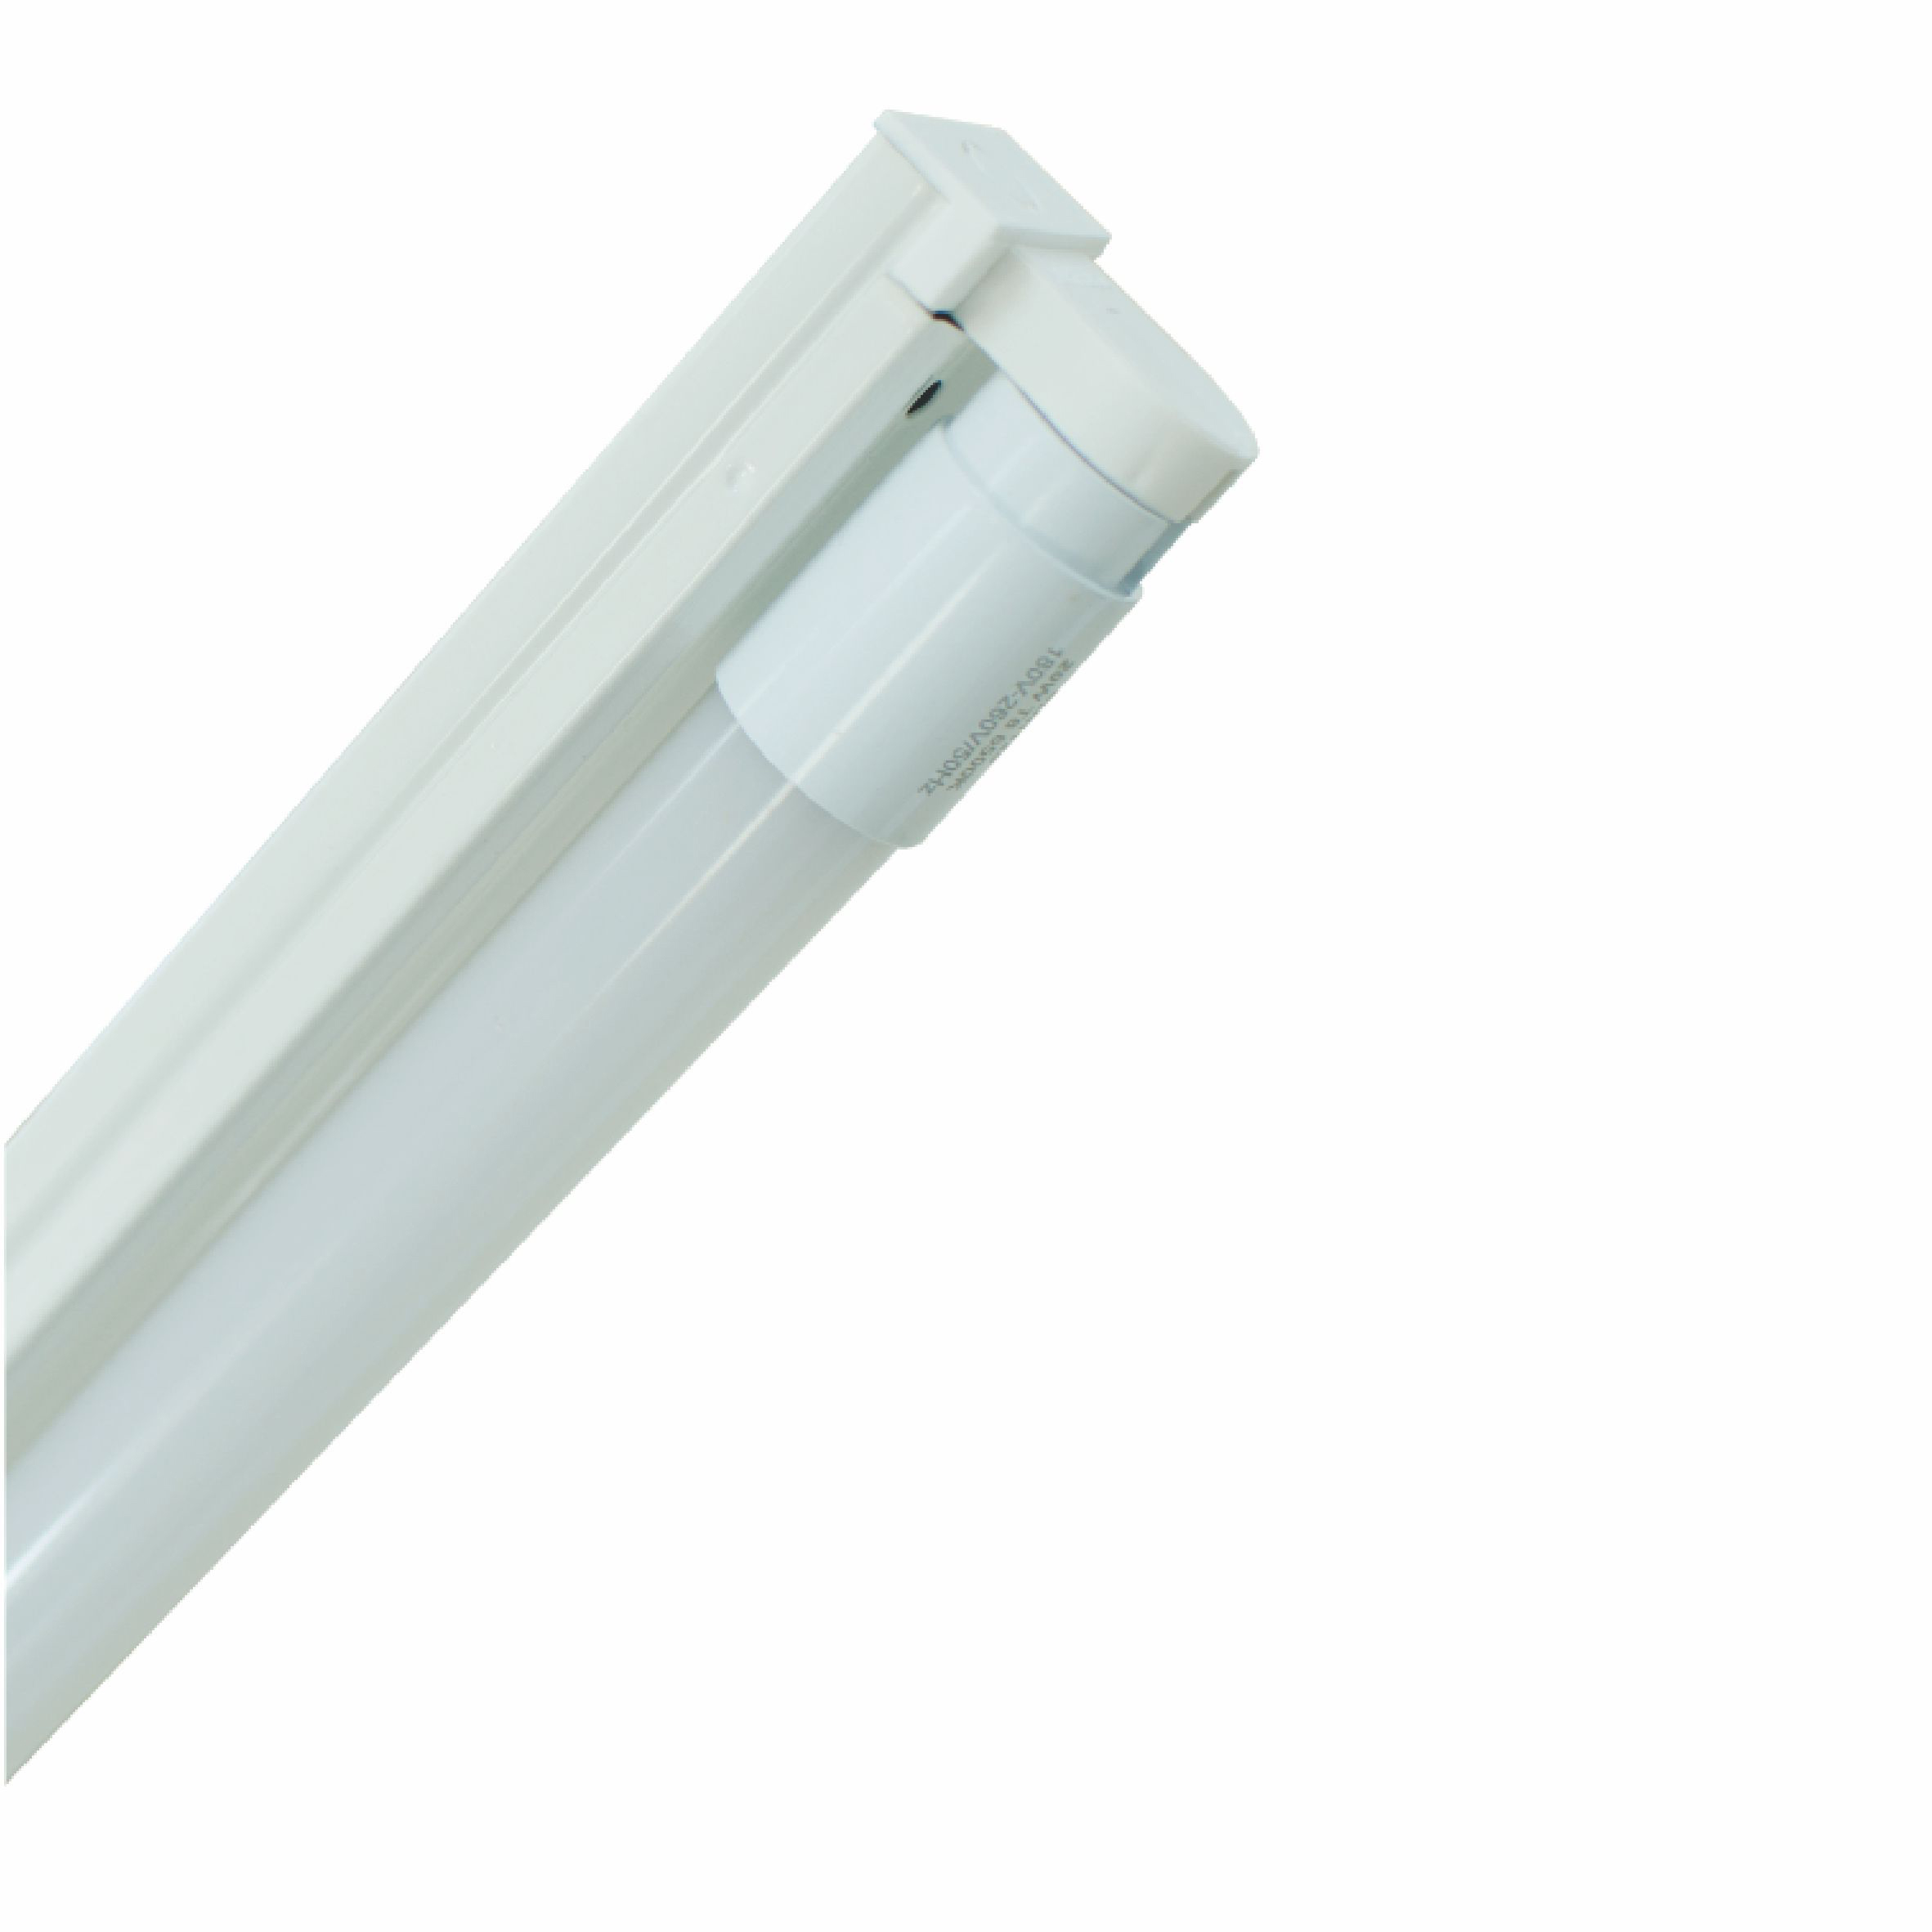 ĐÈN LED BATTEN 20W (KDHD320)